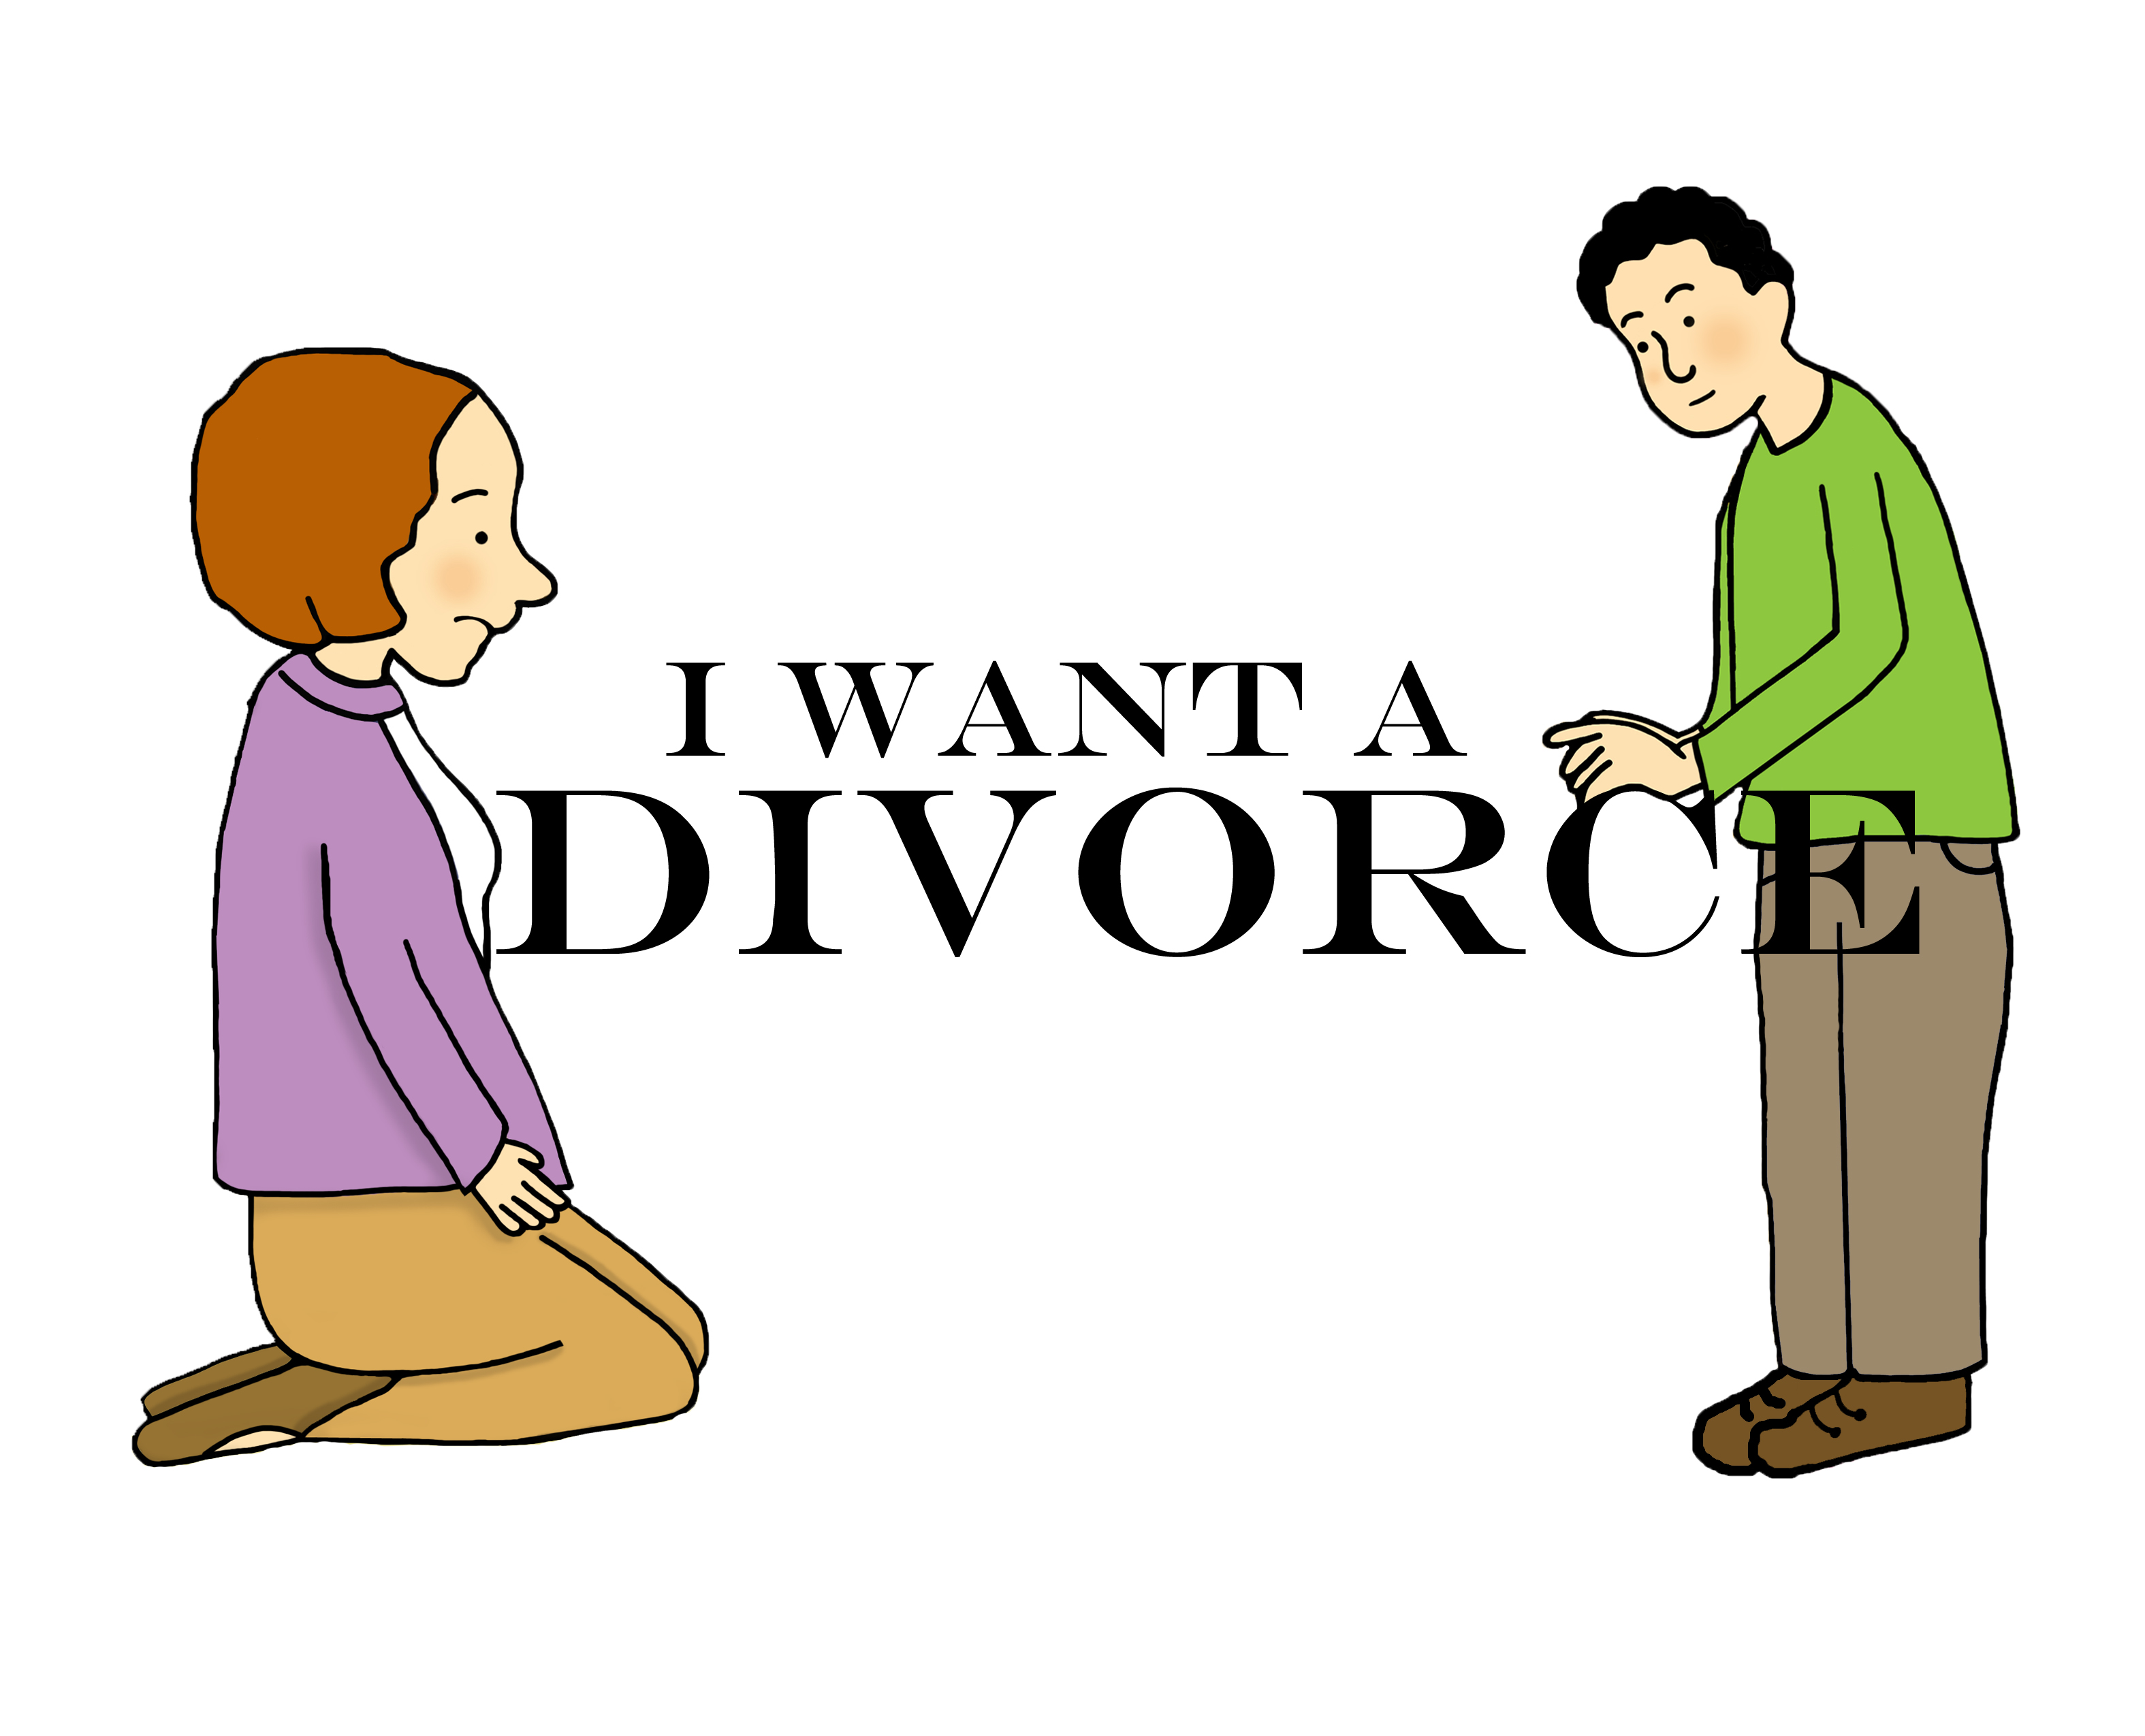 New york divorce forms uncontested divorce info uncontested divorce solutioingenieria Gallery